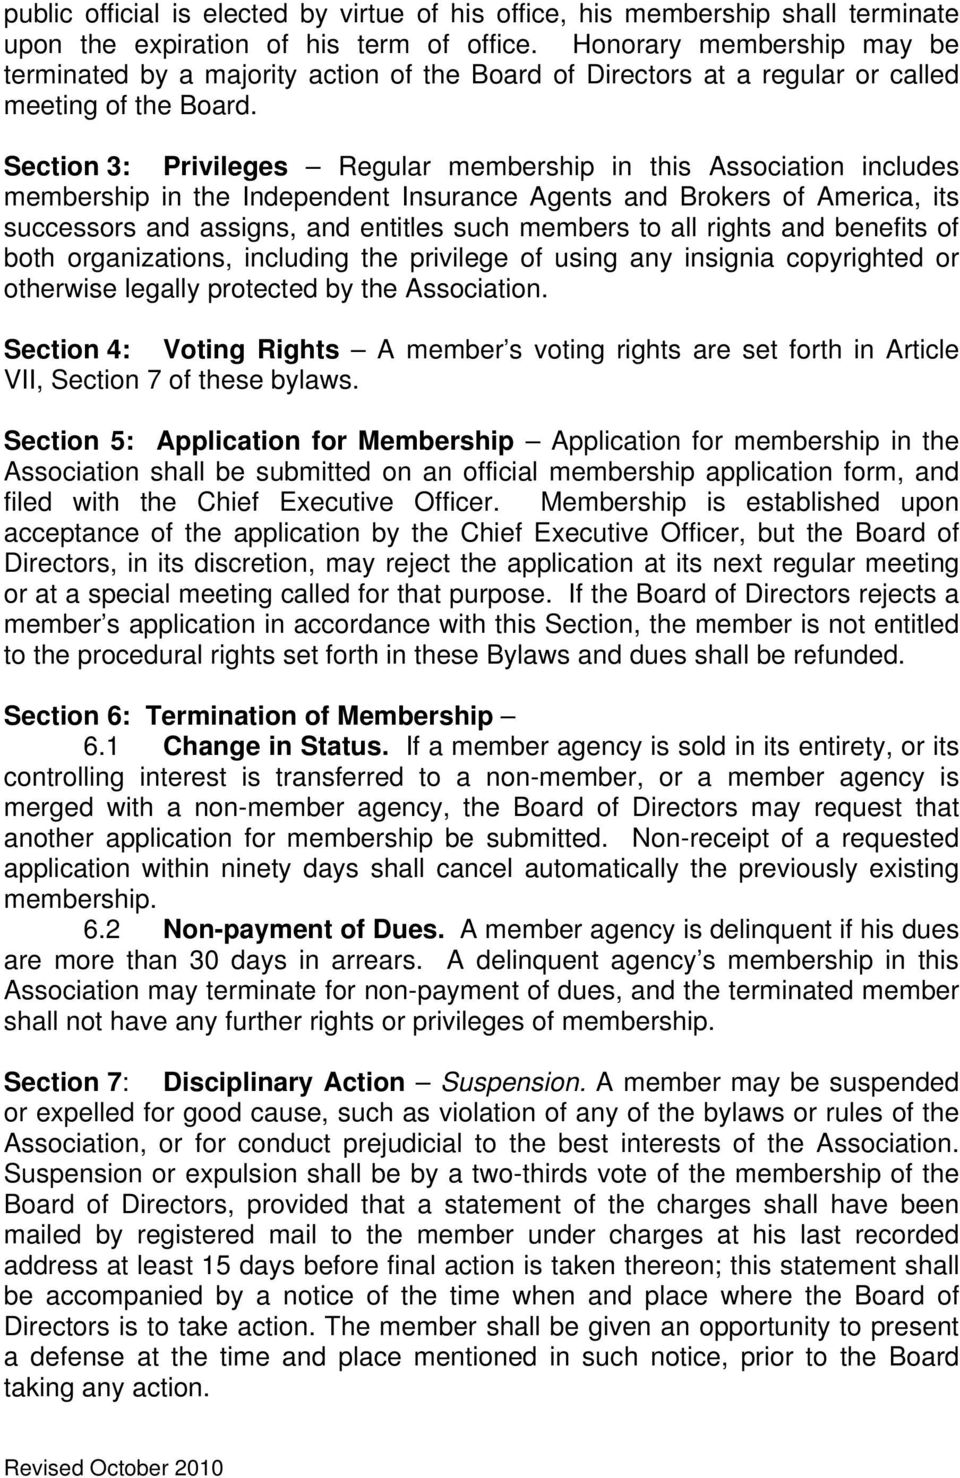 Section 3: Privileges Regular membership in this Association includes membership in the Independent Insurance Agents and Brokers of America, its successors and assigns, and entitles such members to